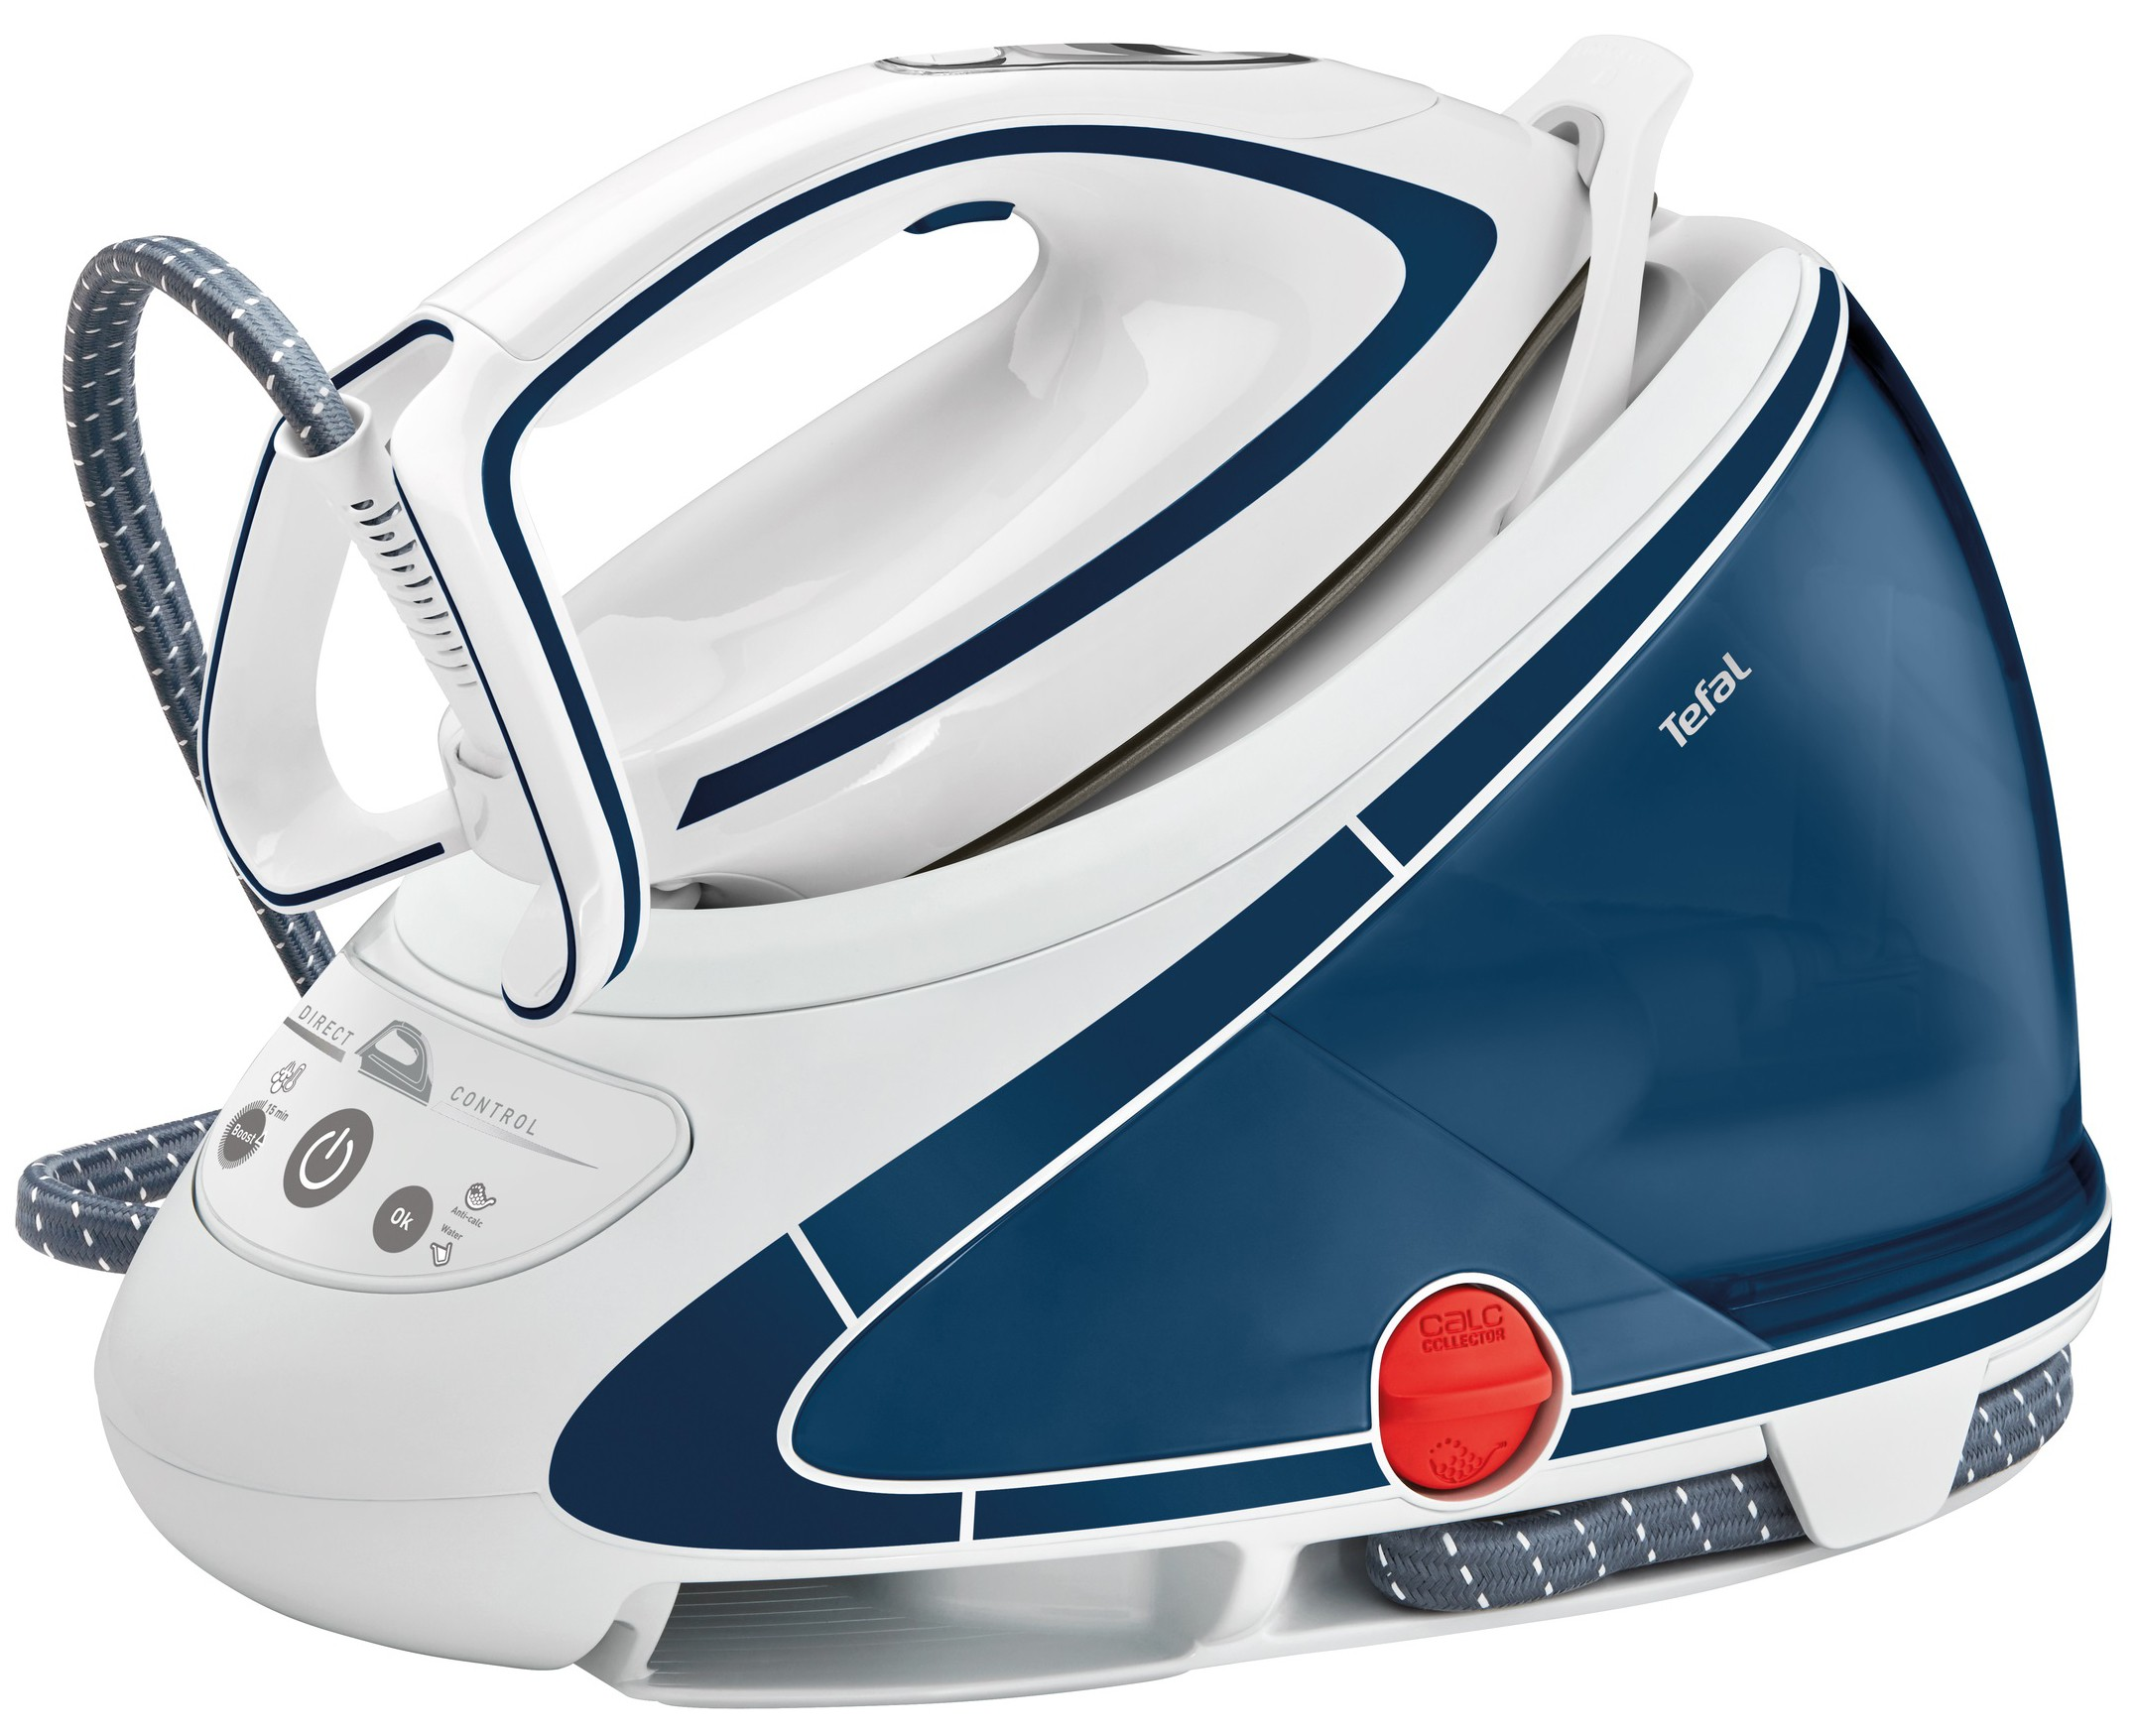 Tefal Pro Express Ultimate Care Gv 9570 купить утюг с